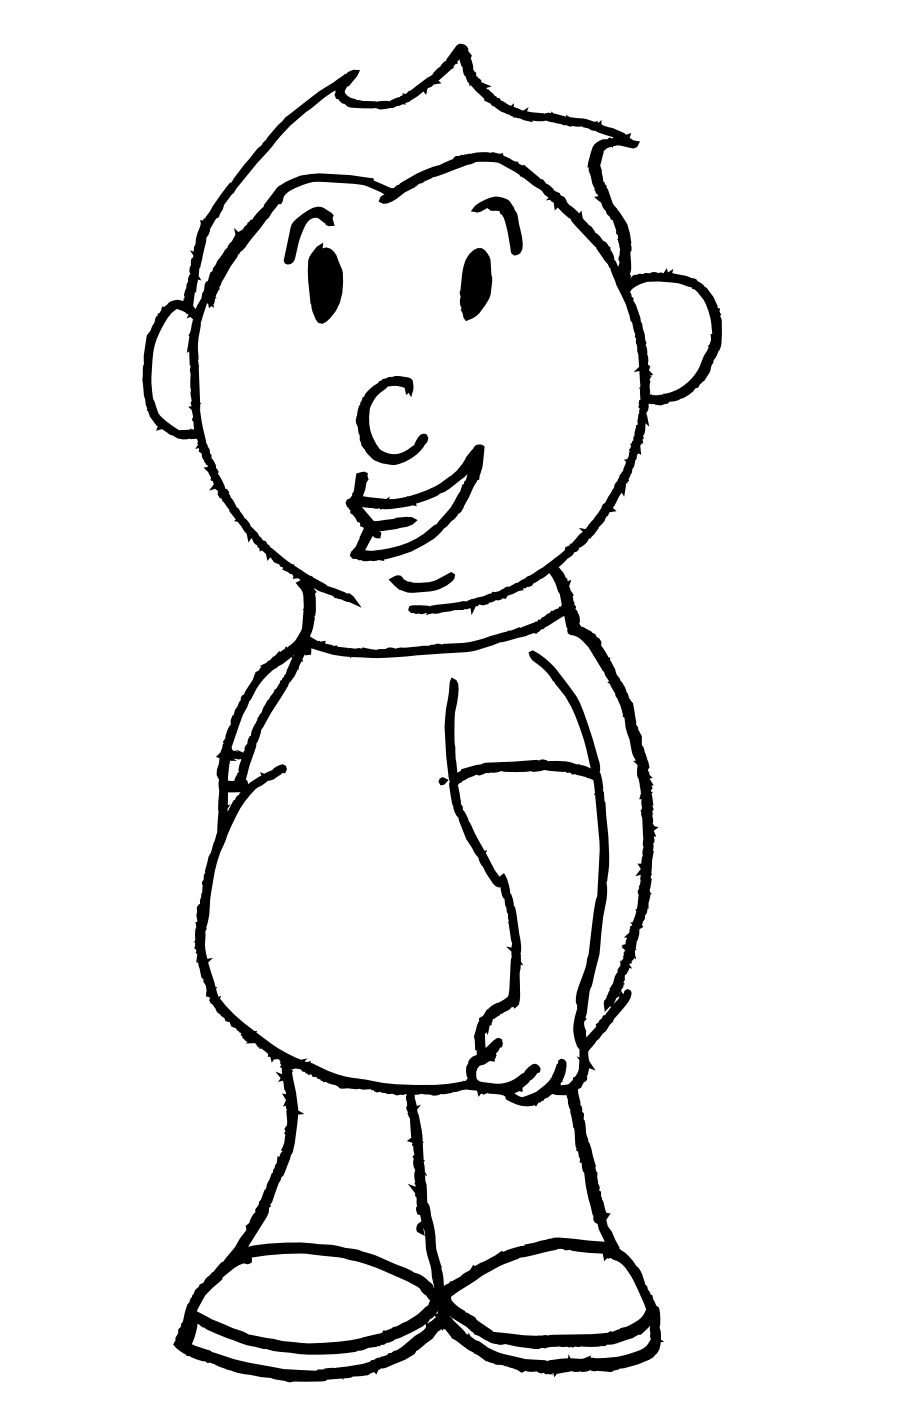 how to draw cartoon characters steps on how to draw mickey mouse full body easy disney how cartoon draw characters to